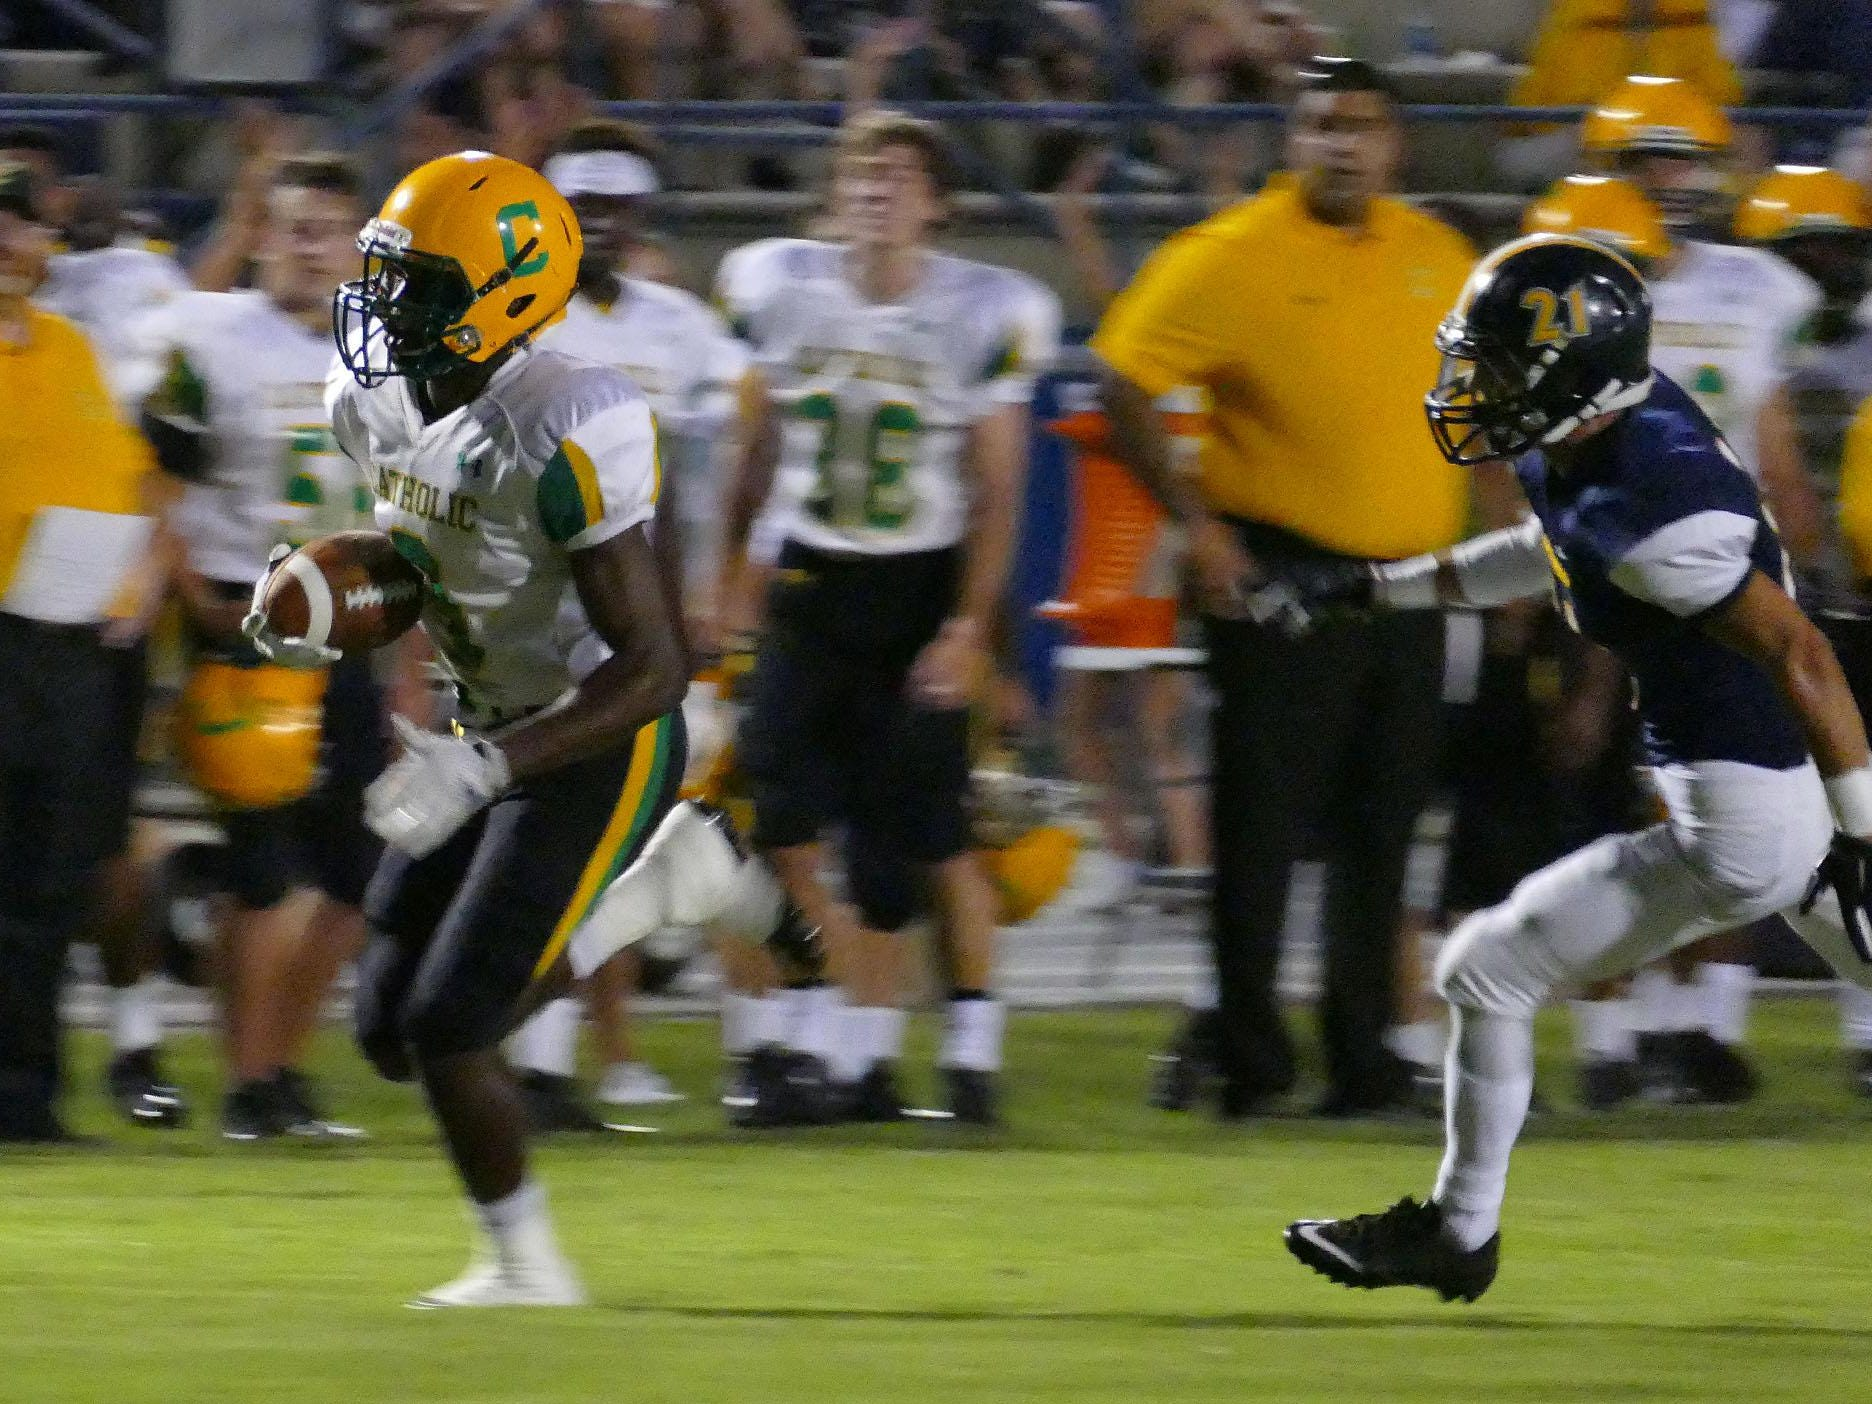 Catholic's Simeon Smiley runs past a Gulf Breeze defender during action this past season. Smiley was named a first-team Class 3A All-State player by the sports writers of Florida.